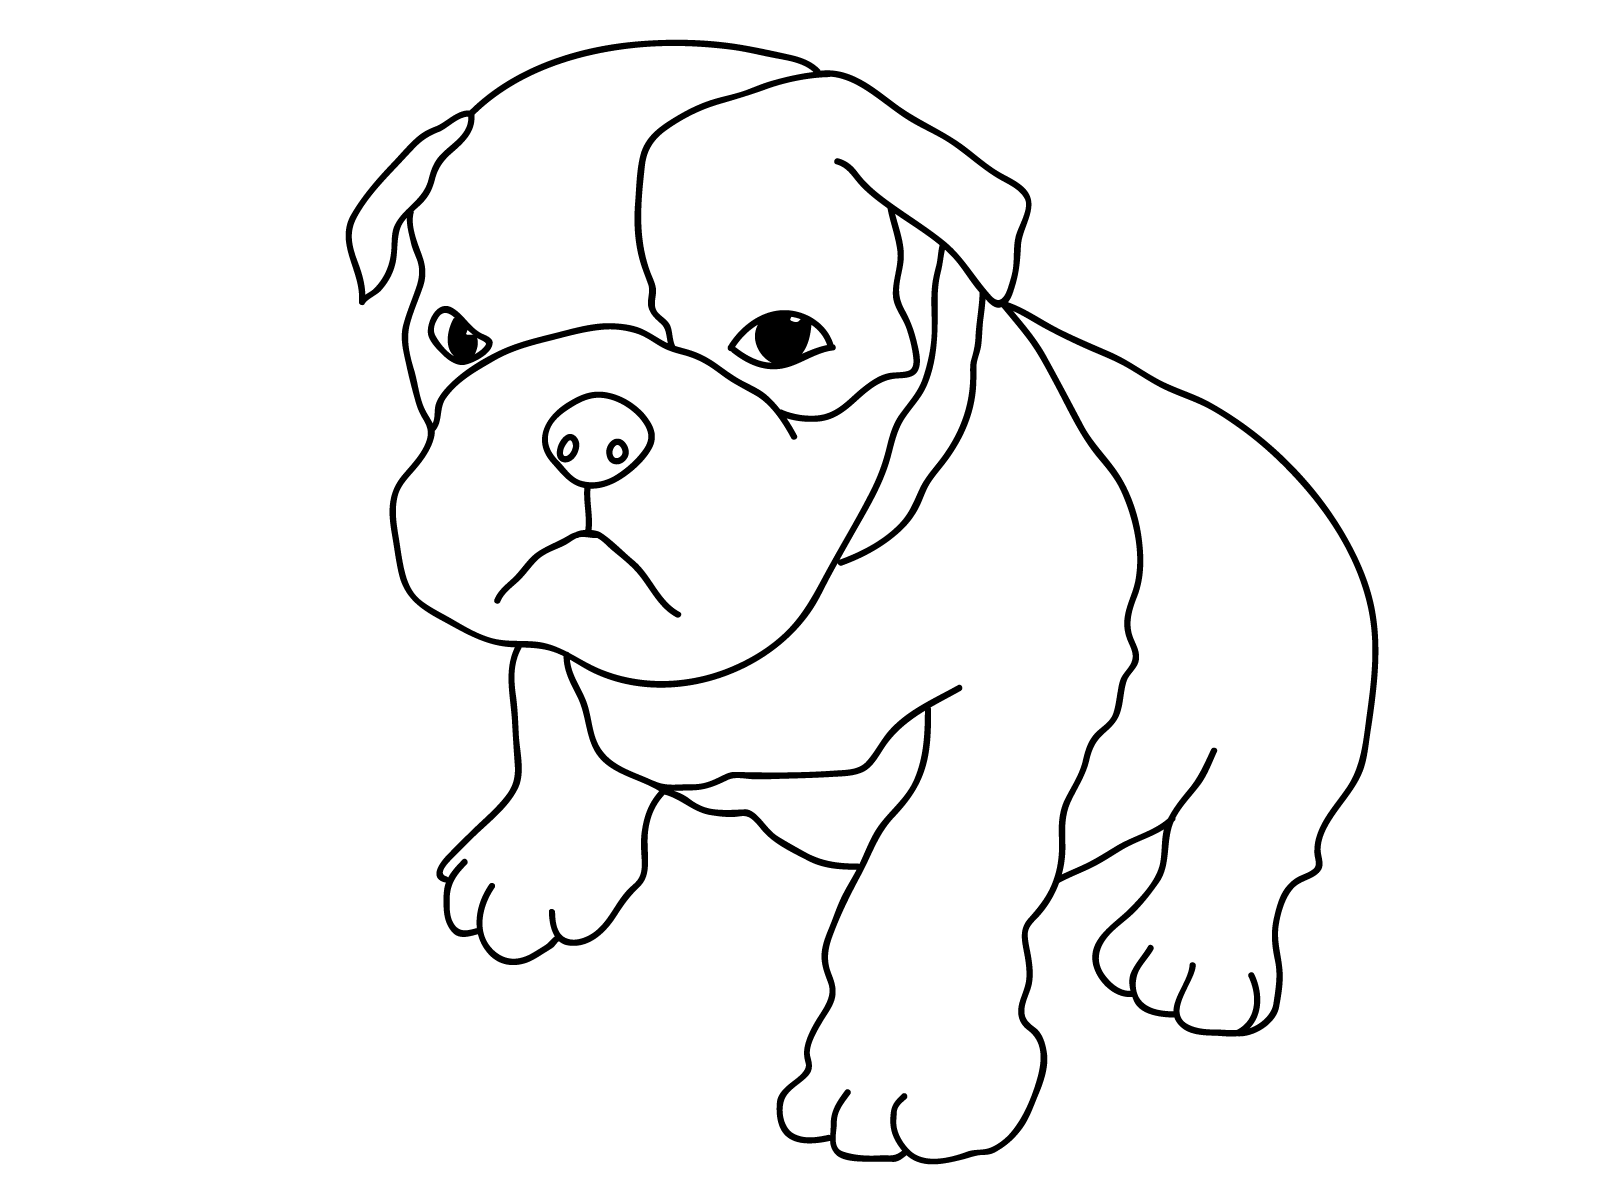 colouring pictures of pets dog with puppies coloring page to print dor free dog and pictures pets of colouring